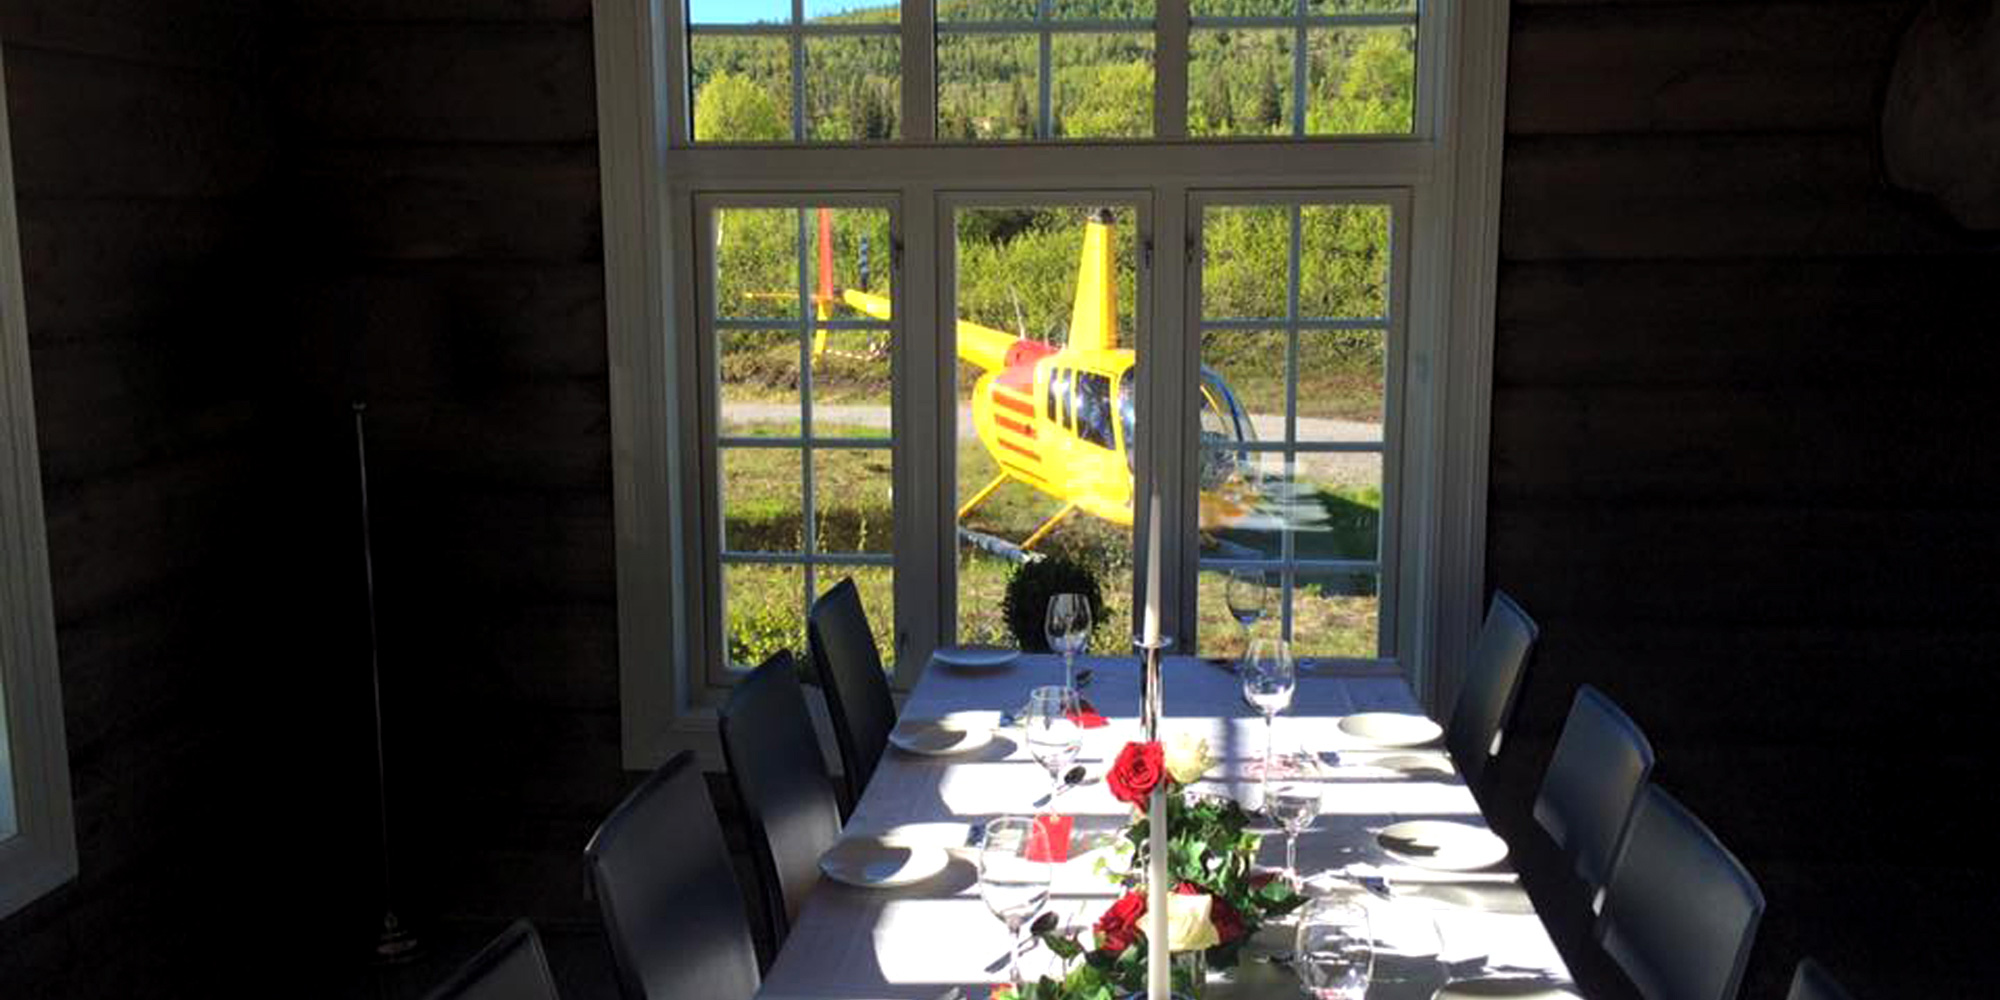 Ismenningen Lodge & Cabin rental - guests can arrive by helicopter. Copyright: Ismenningen